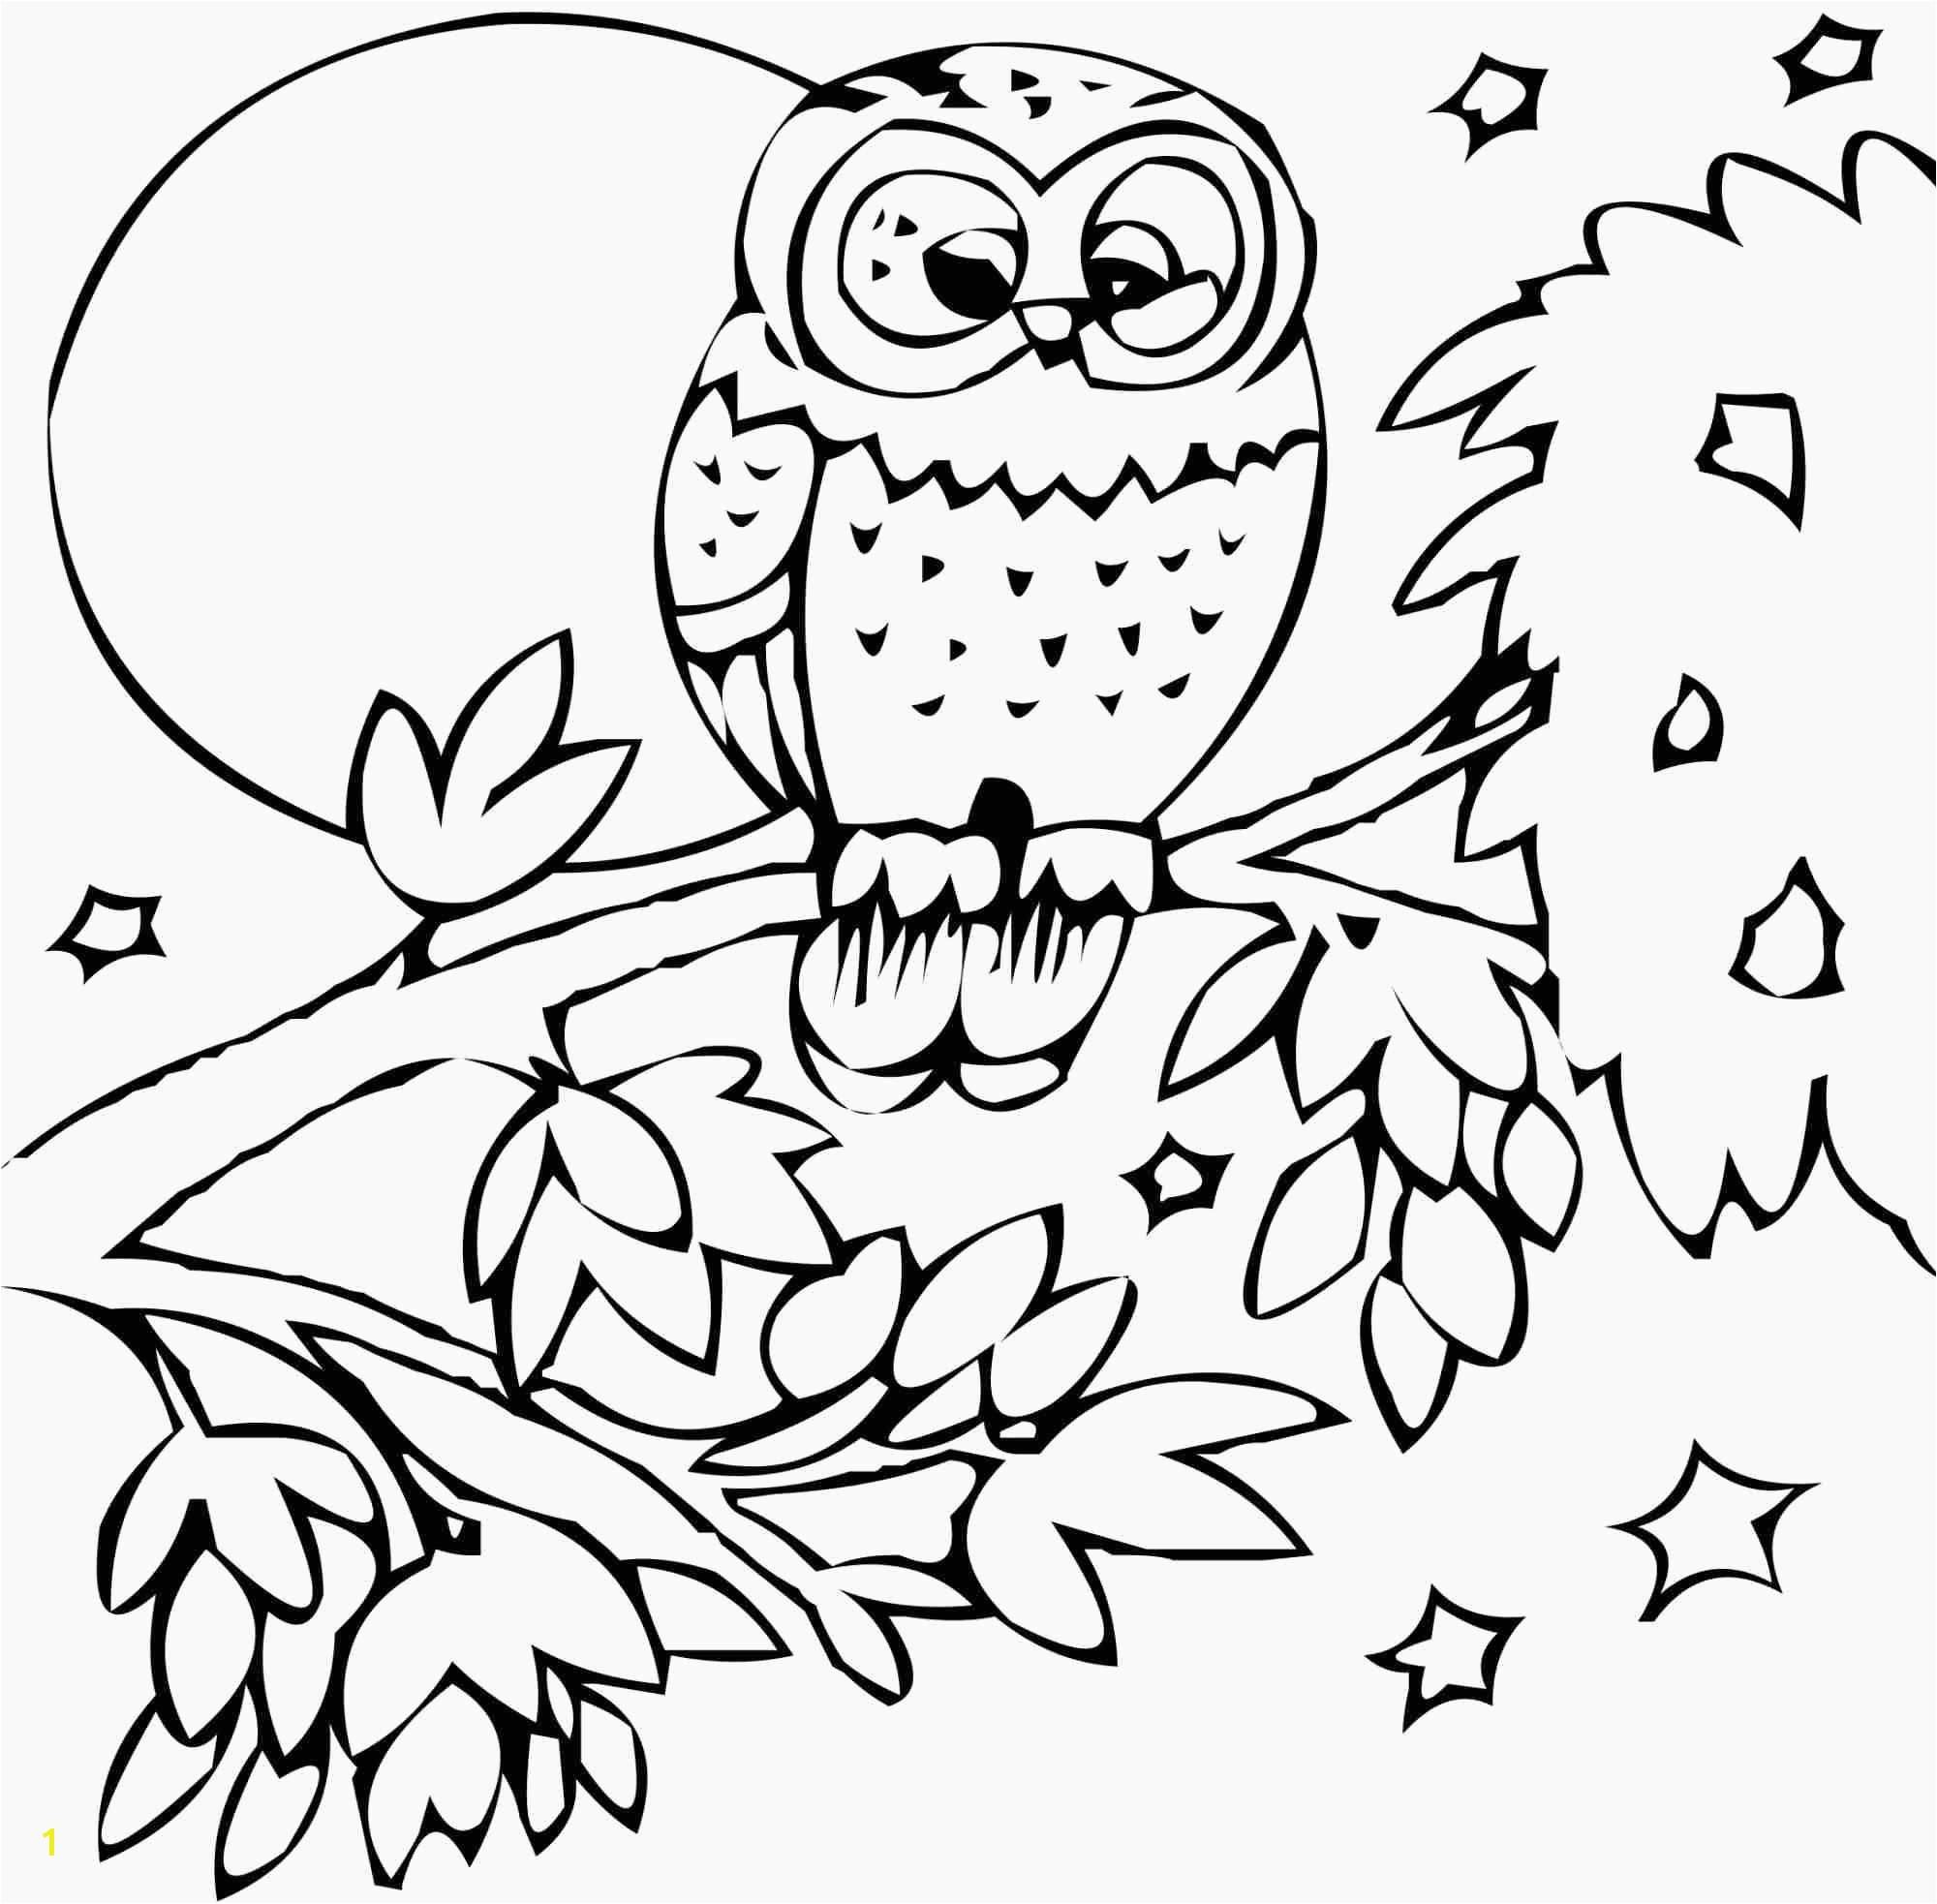 Childrens Coloring Pages Of Animals Children S Coloring Pages Animals